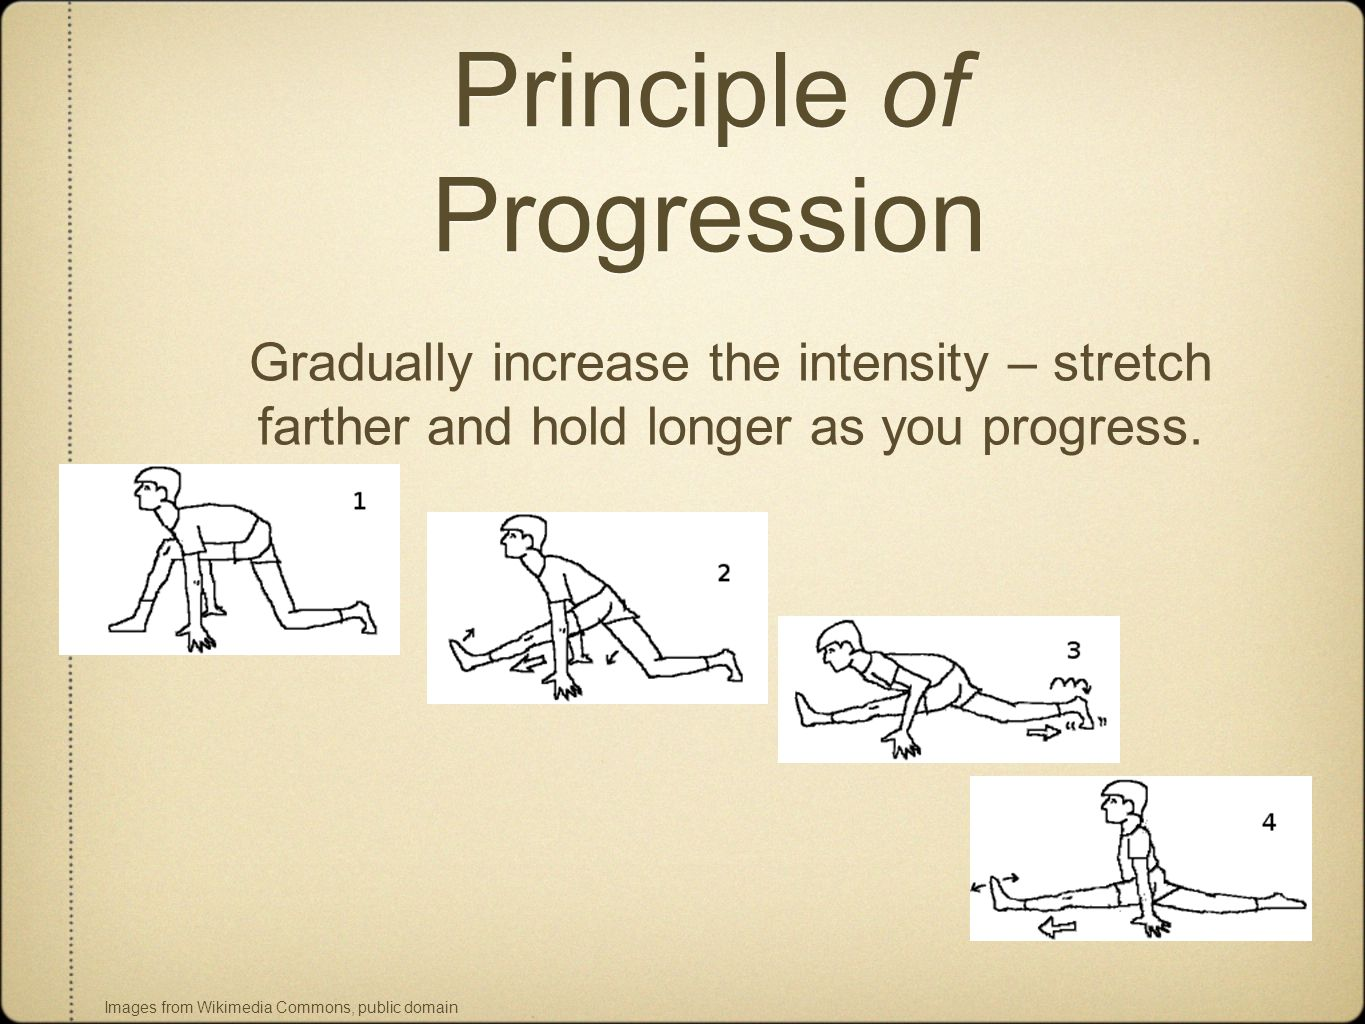 Principle of Progression Gradually increase the intensity – stretch farther and hold longer as you progress.